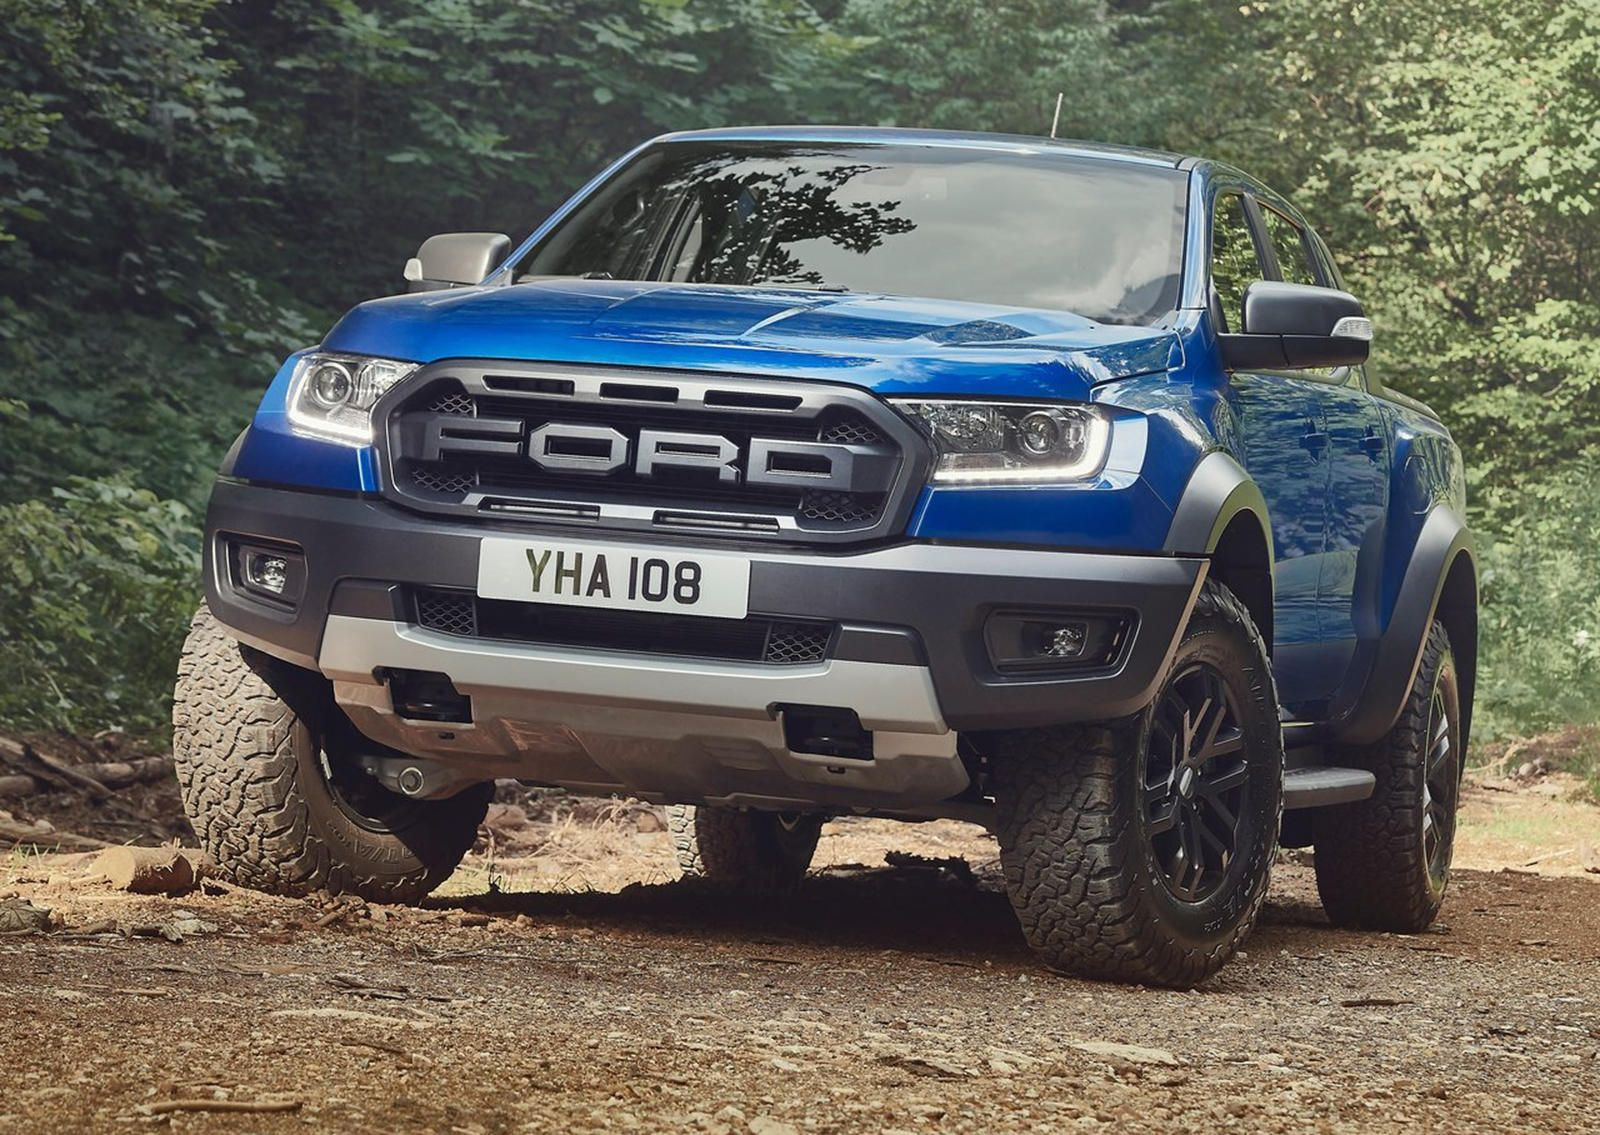 A 710 Hp Supercharged V8 Ford Ranger Raptor Is Coming A 710 Horsepower Mid Size Truck Sign Us Up In 2020 Ford Ranger Raptor Ford Ranger Raptor